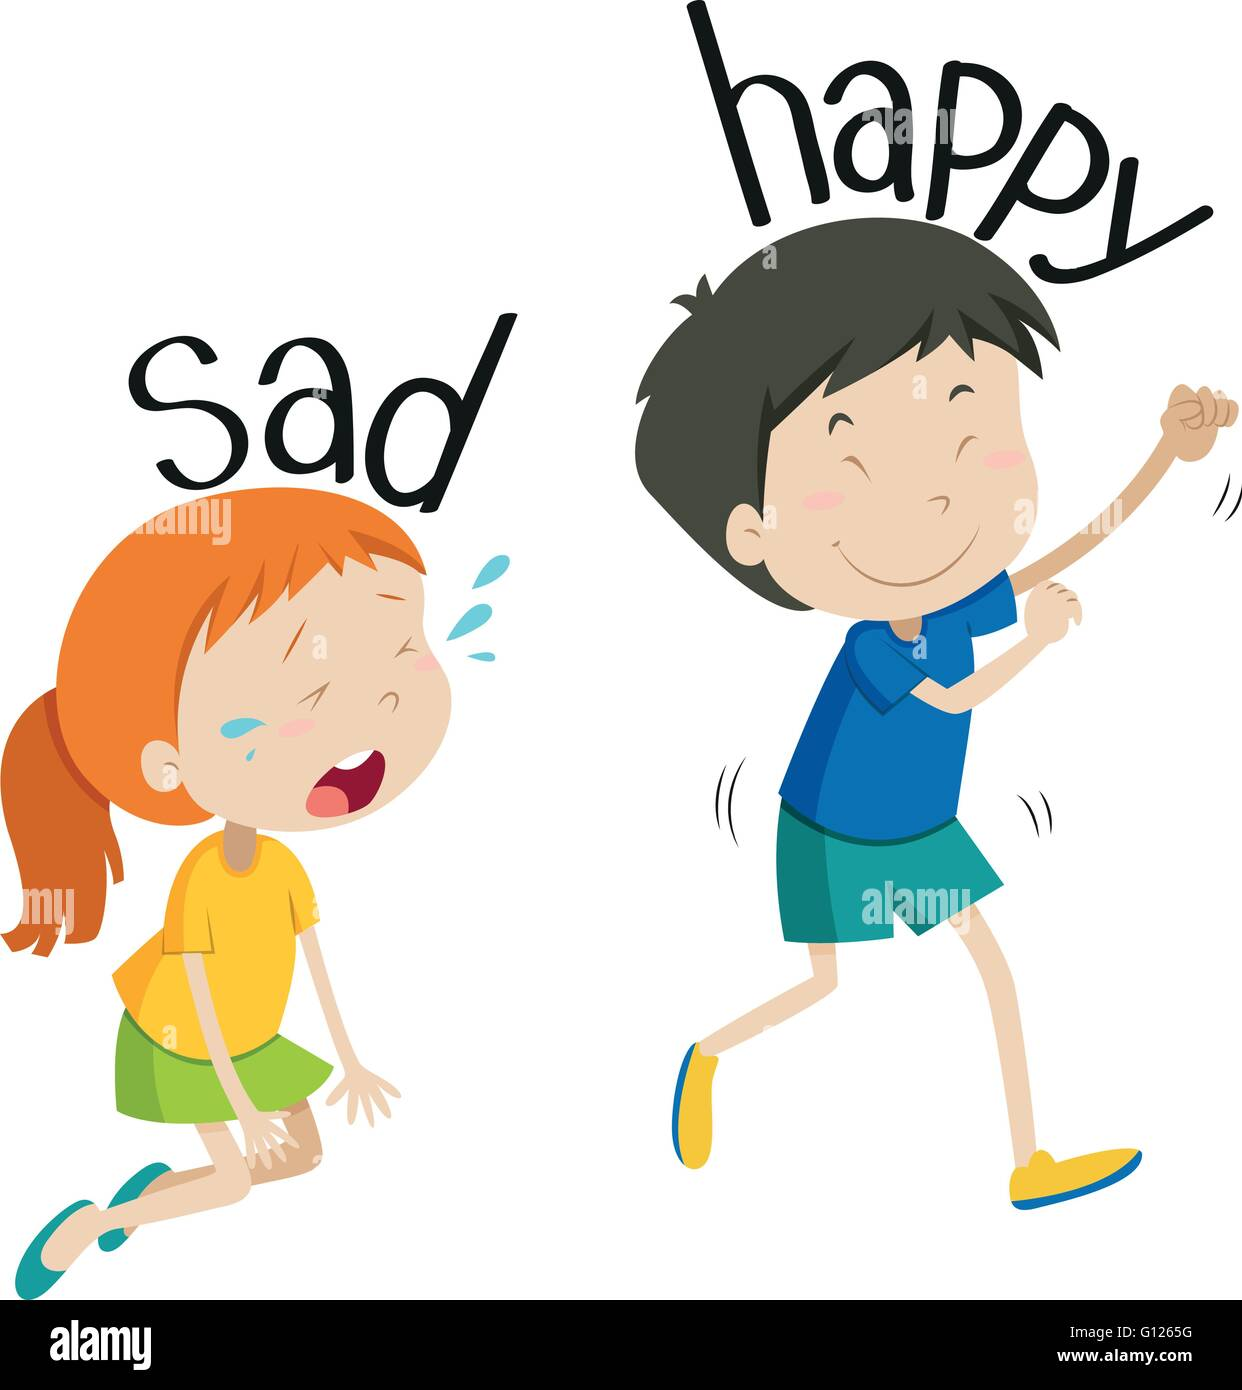 Opposite Adjective Sad And Happy Illustration Stock Vector